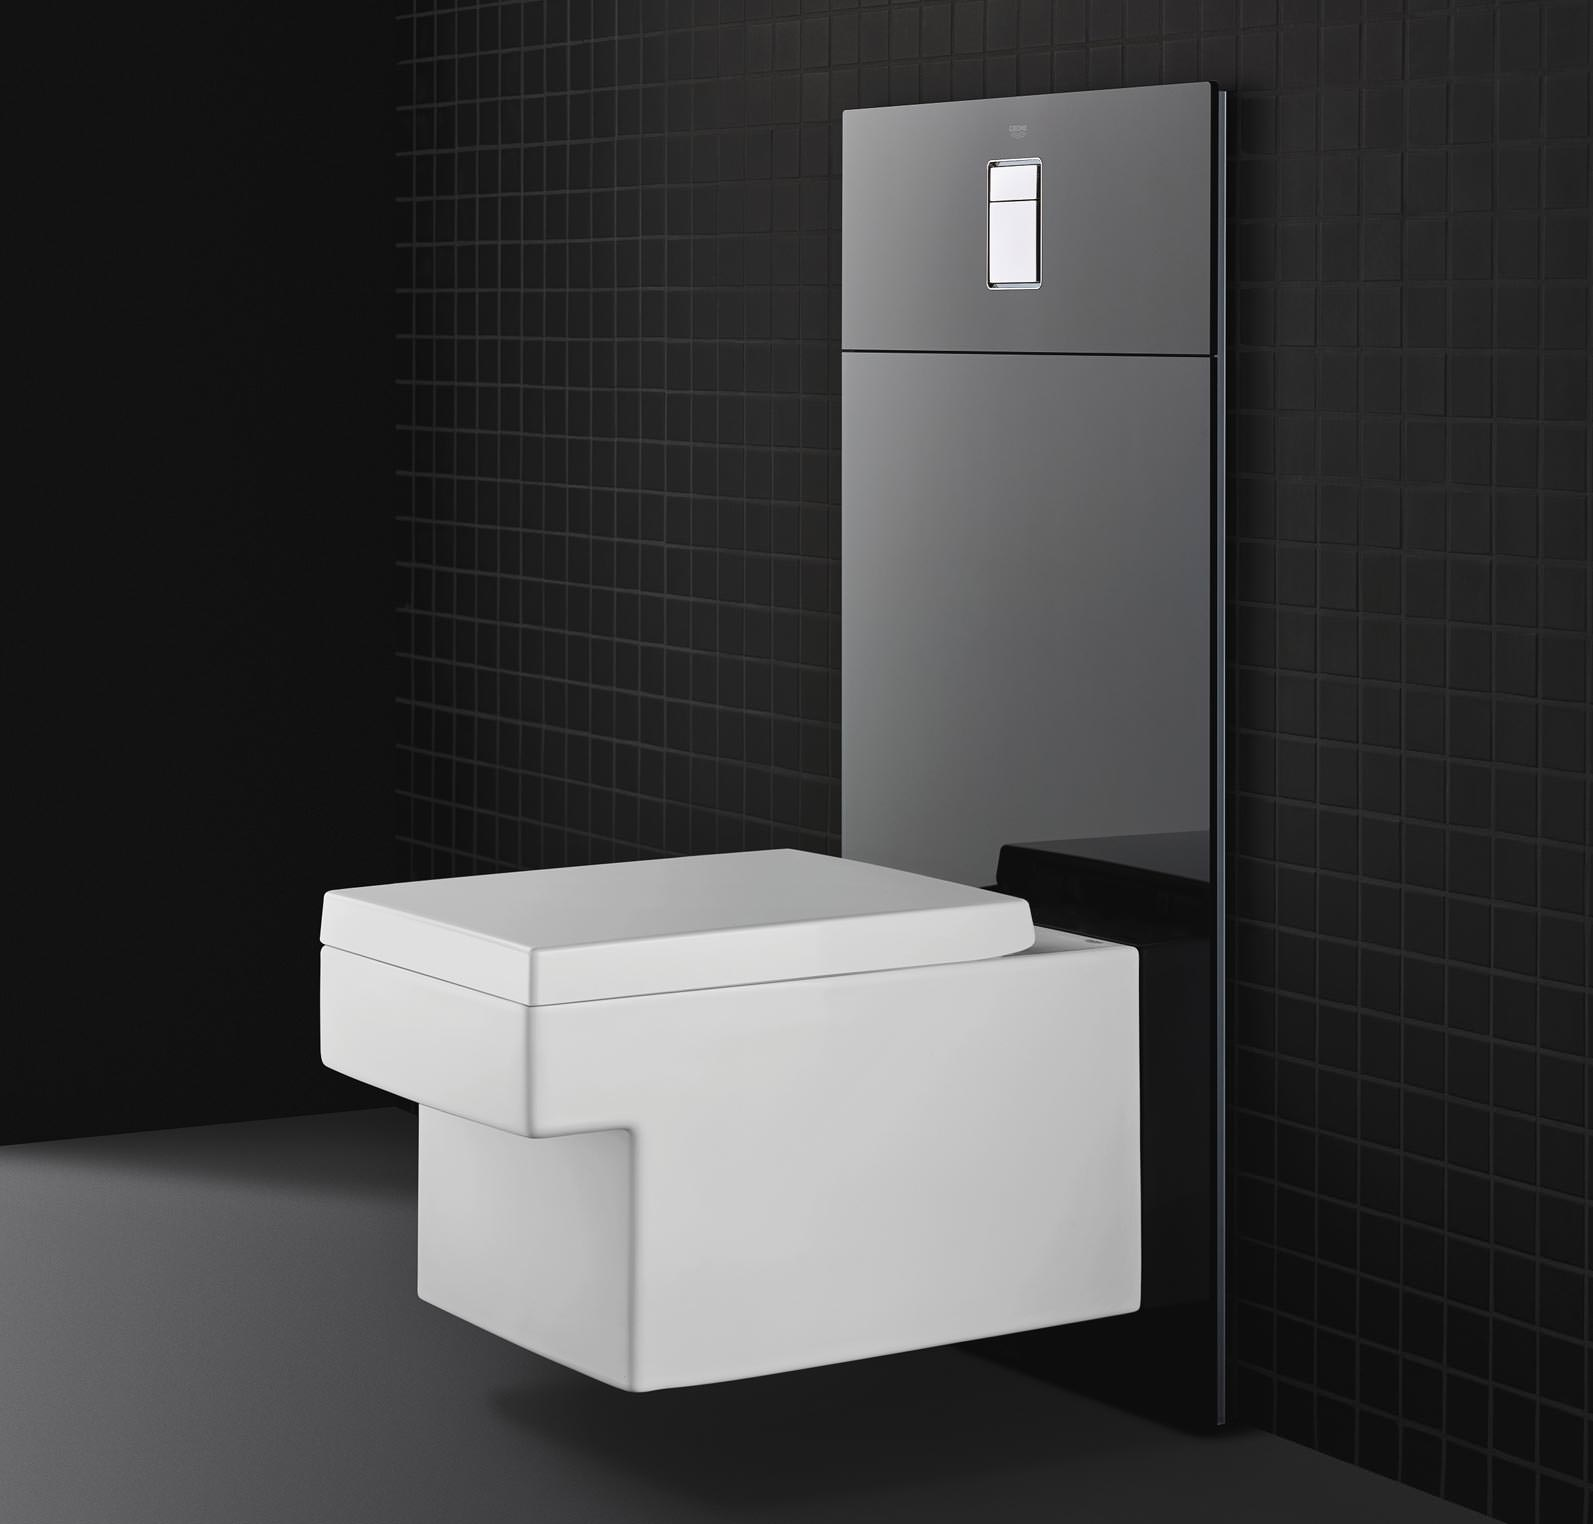 bau euro cube grohe eigene keramiken f r grohe eigene armaturen. Black Bedroom Furniture Sets. Home Design Ideas